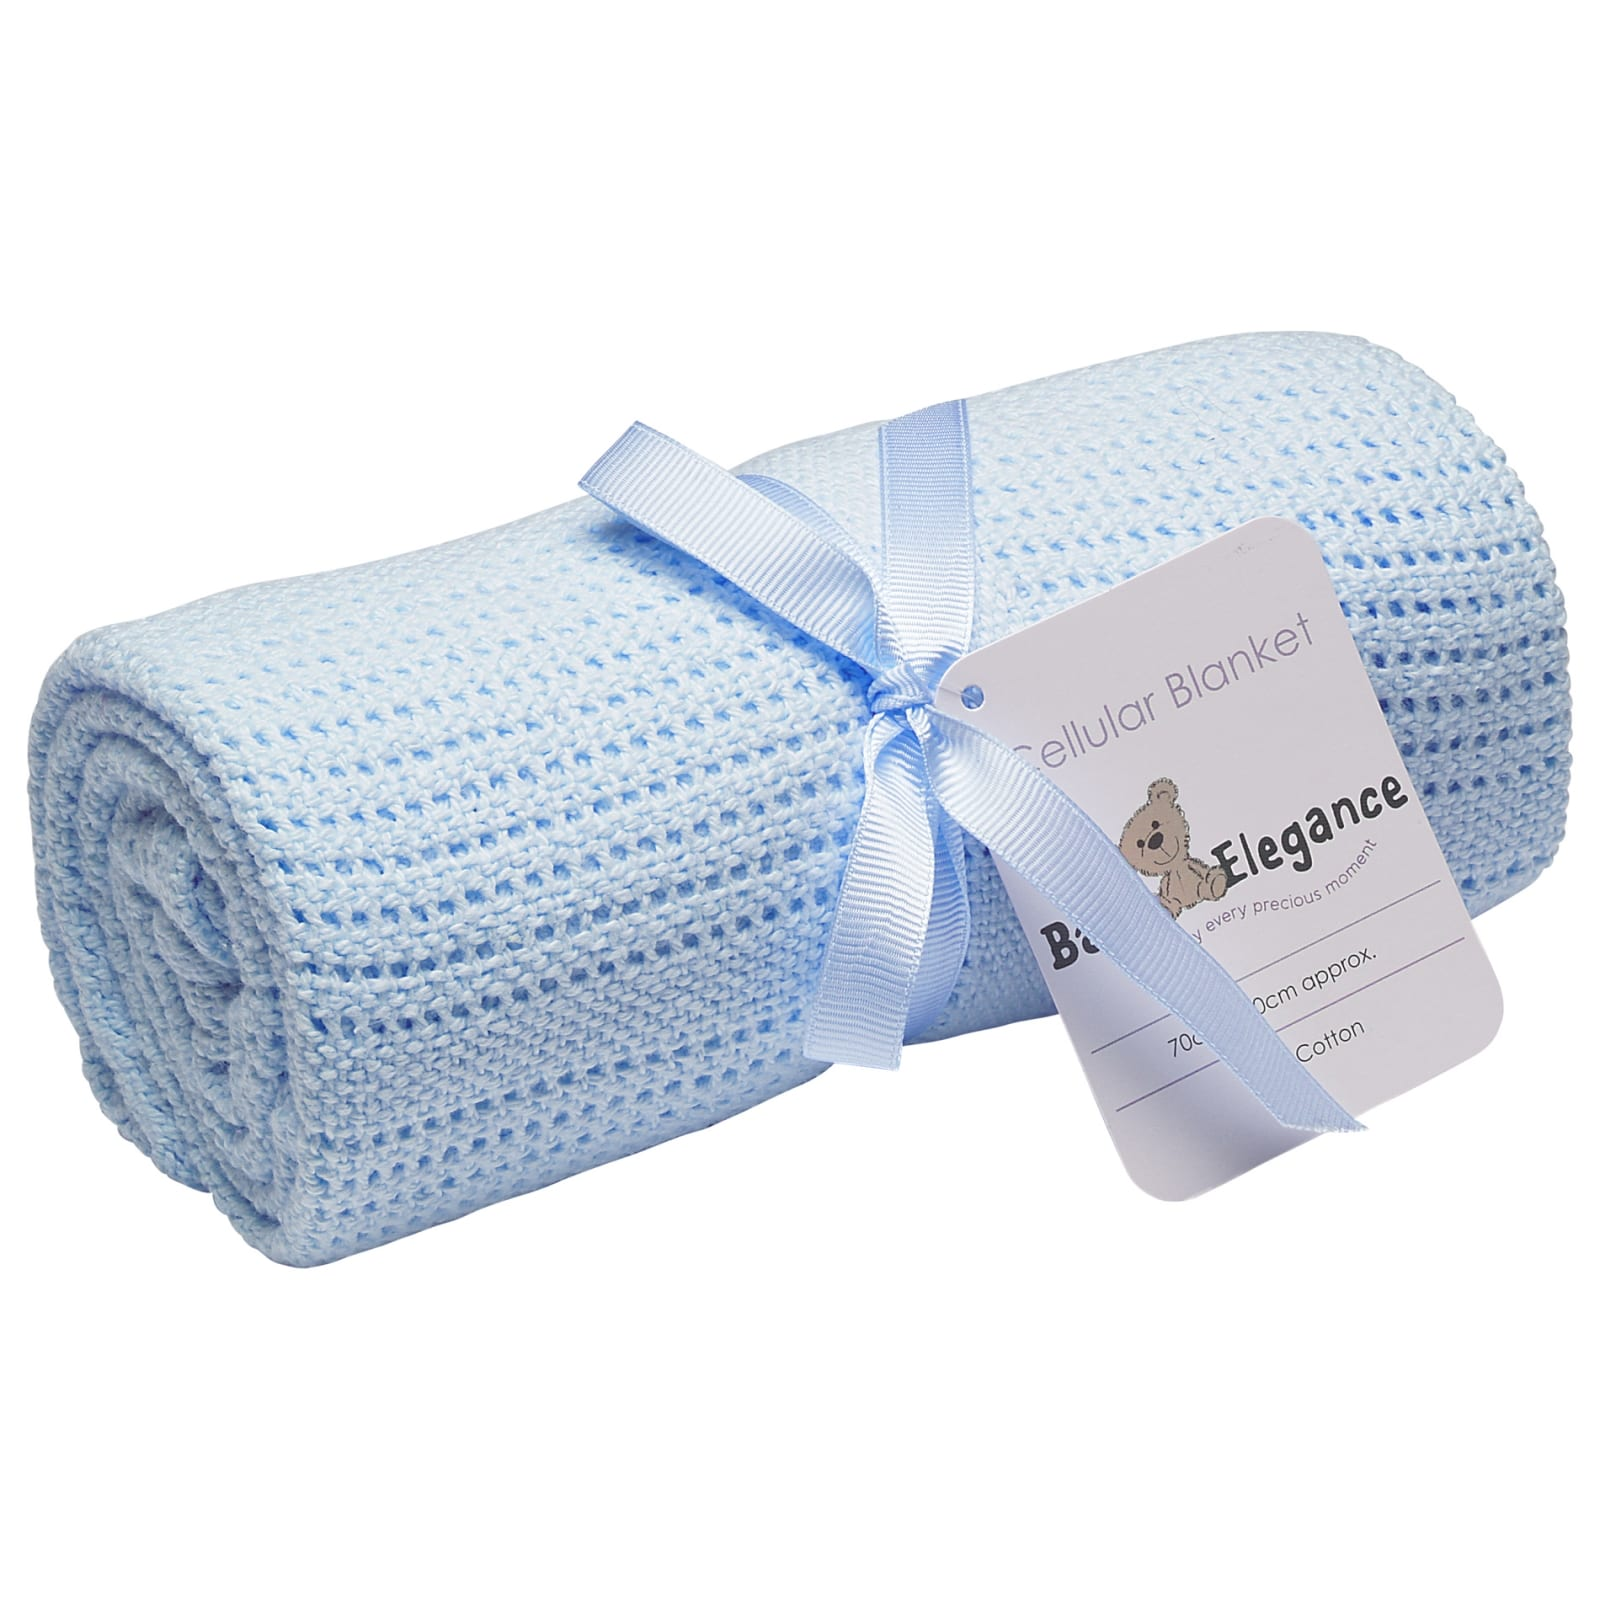 Cellular Blanket Cot Size product image